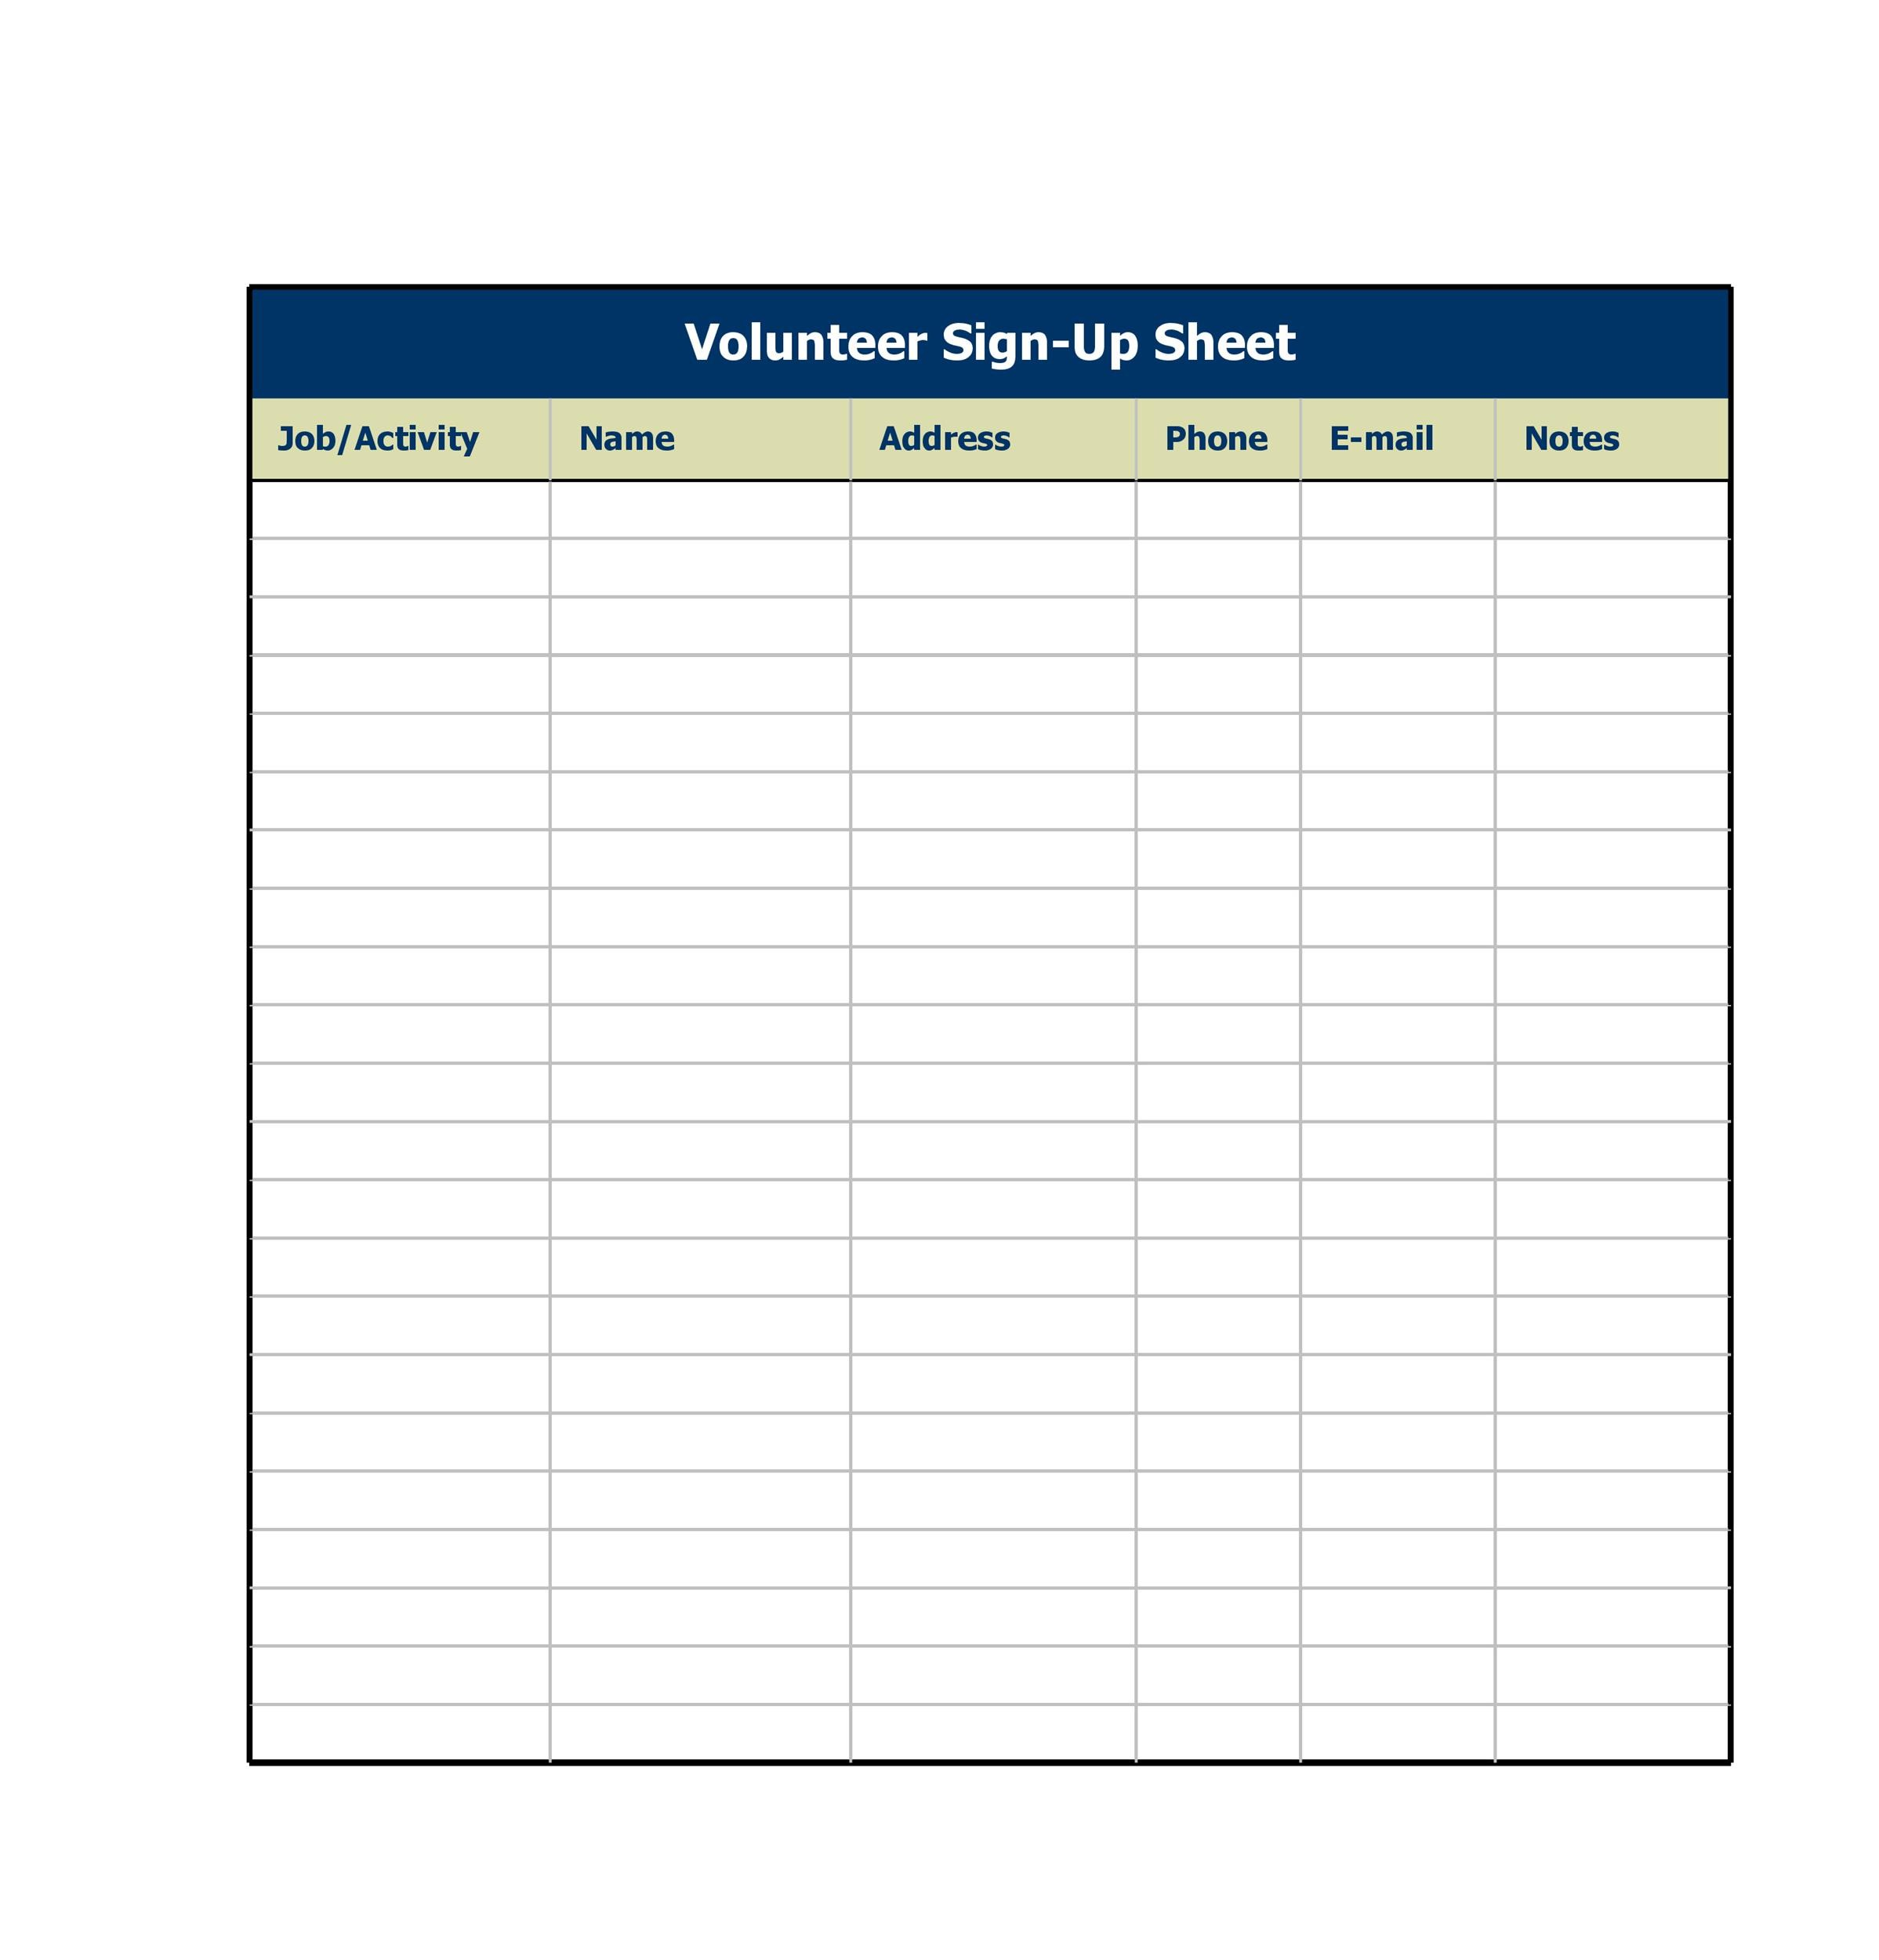 Sign Up Sheet Sign In Sheet Templates Word Excel - Volunteer schedule template